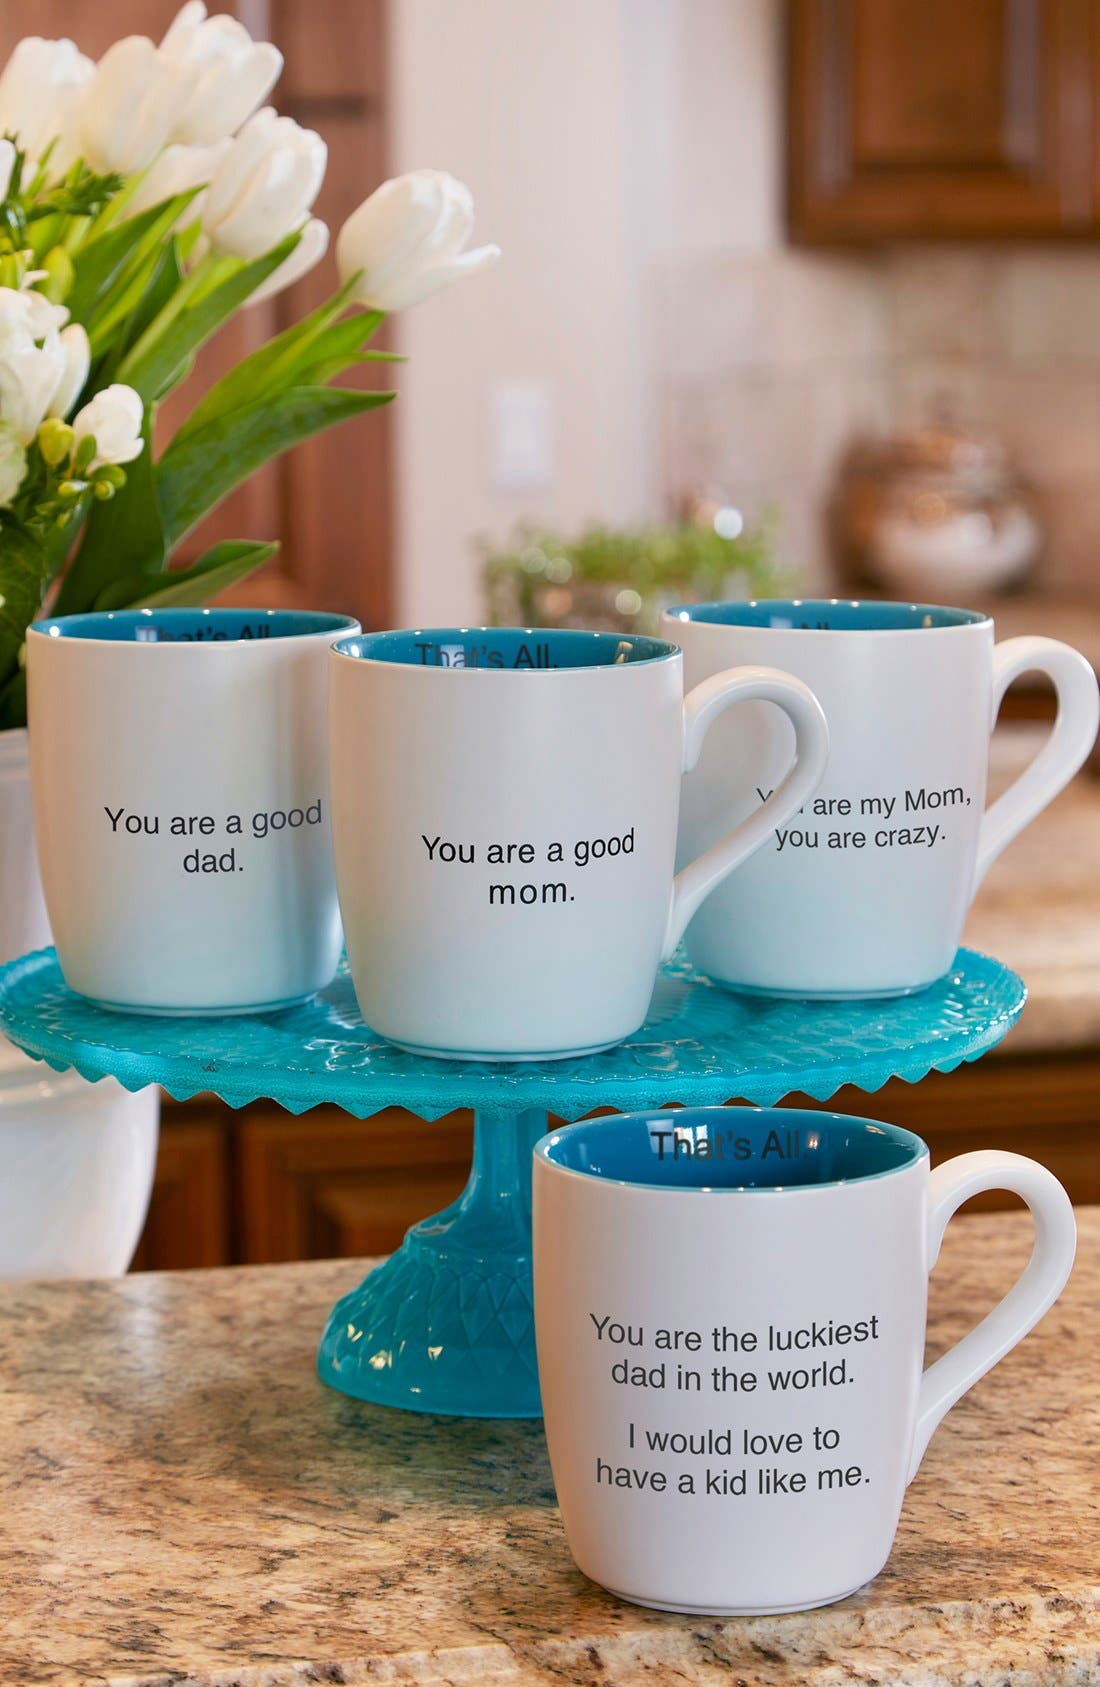 'You Are a Good Dad - That's All' Coffee Mug,                             Alternate thumbnail 2, color,                             100